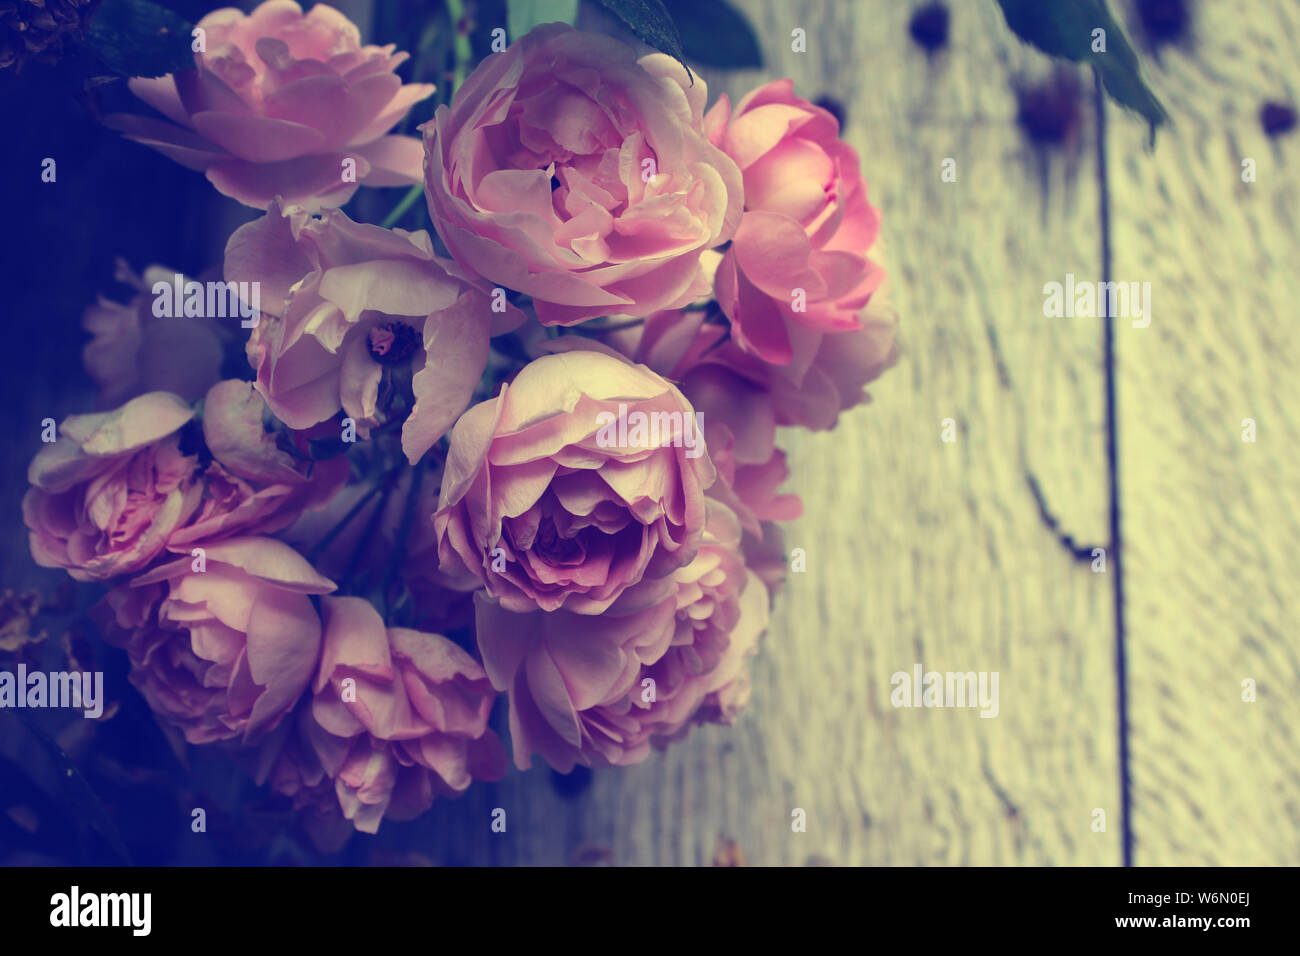 vintage style effect beautiful pink rose blossom background in close up with copyspace stock photo alamy alamy